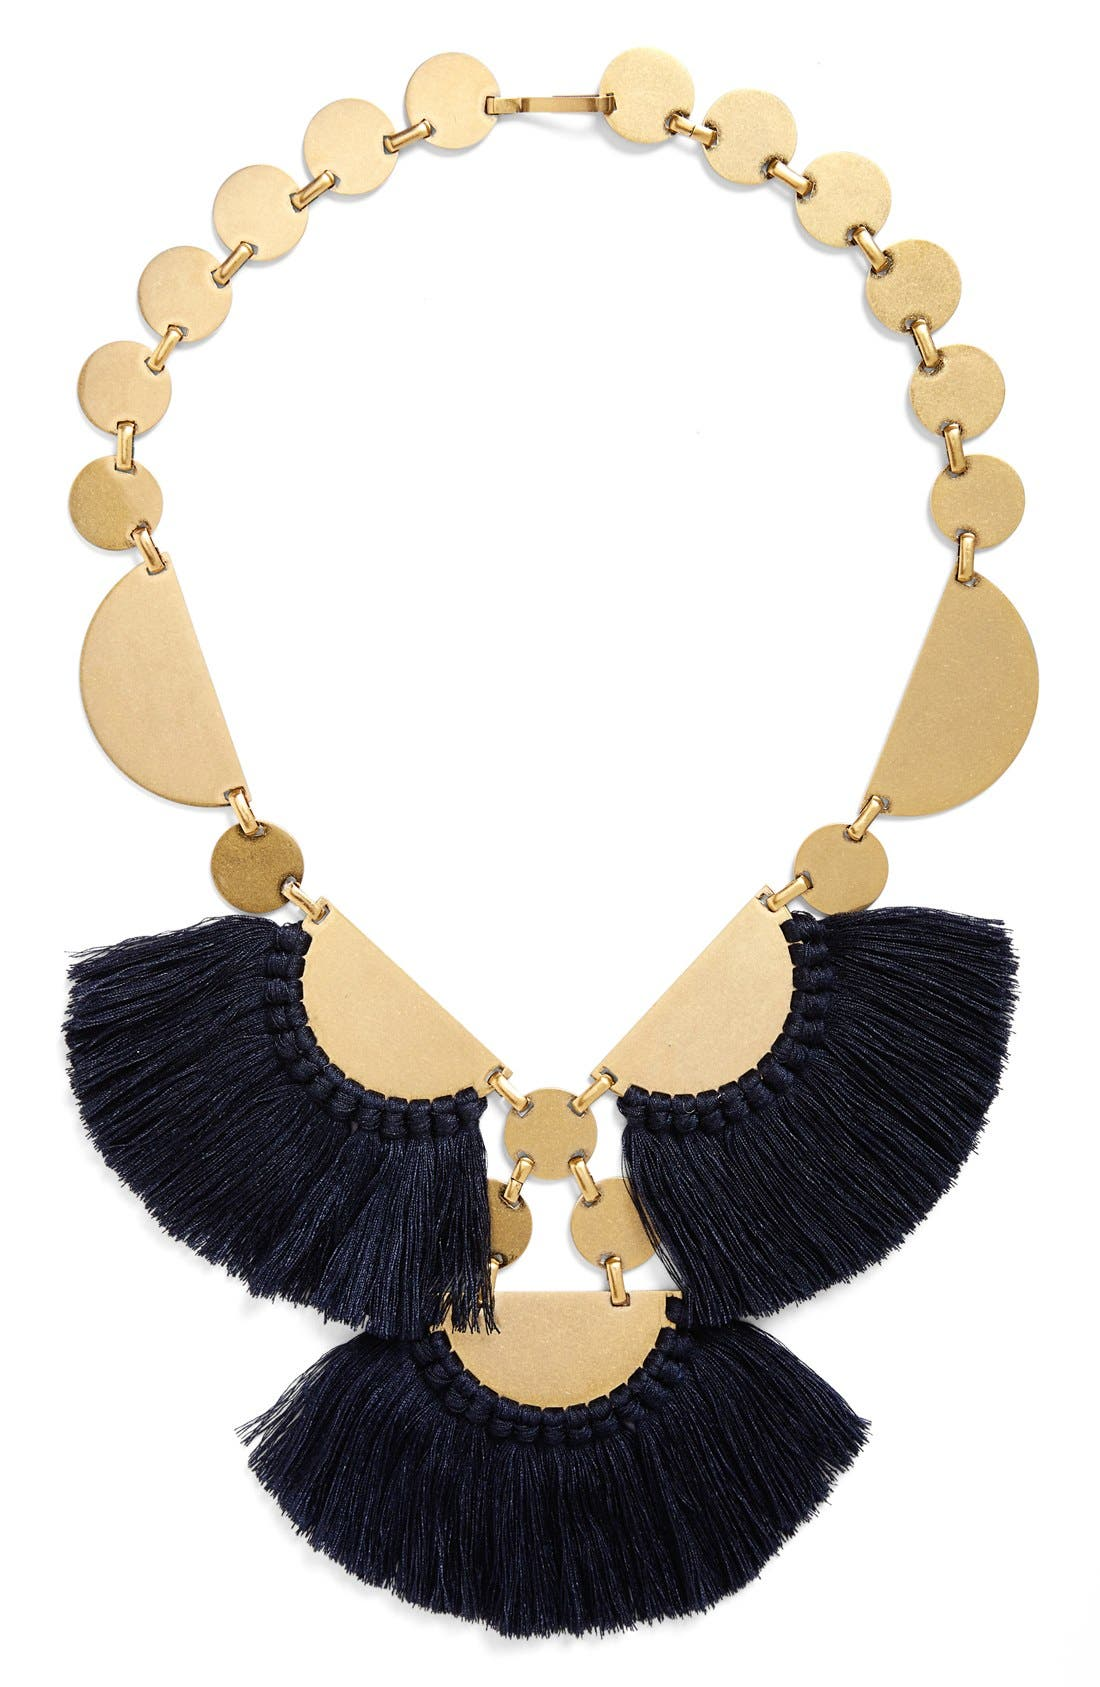 Alternate Image 1 Selected - Tory Burch 'Fringe Disc' Statement Necklace